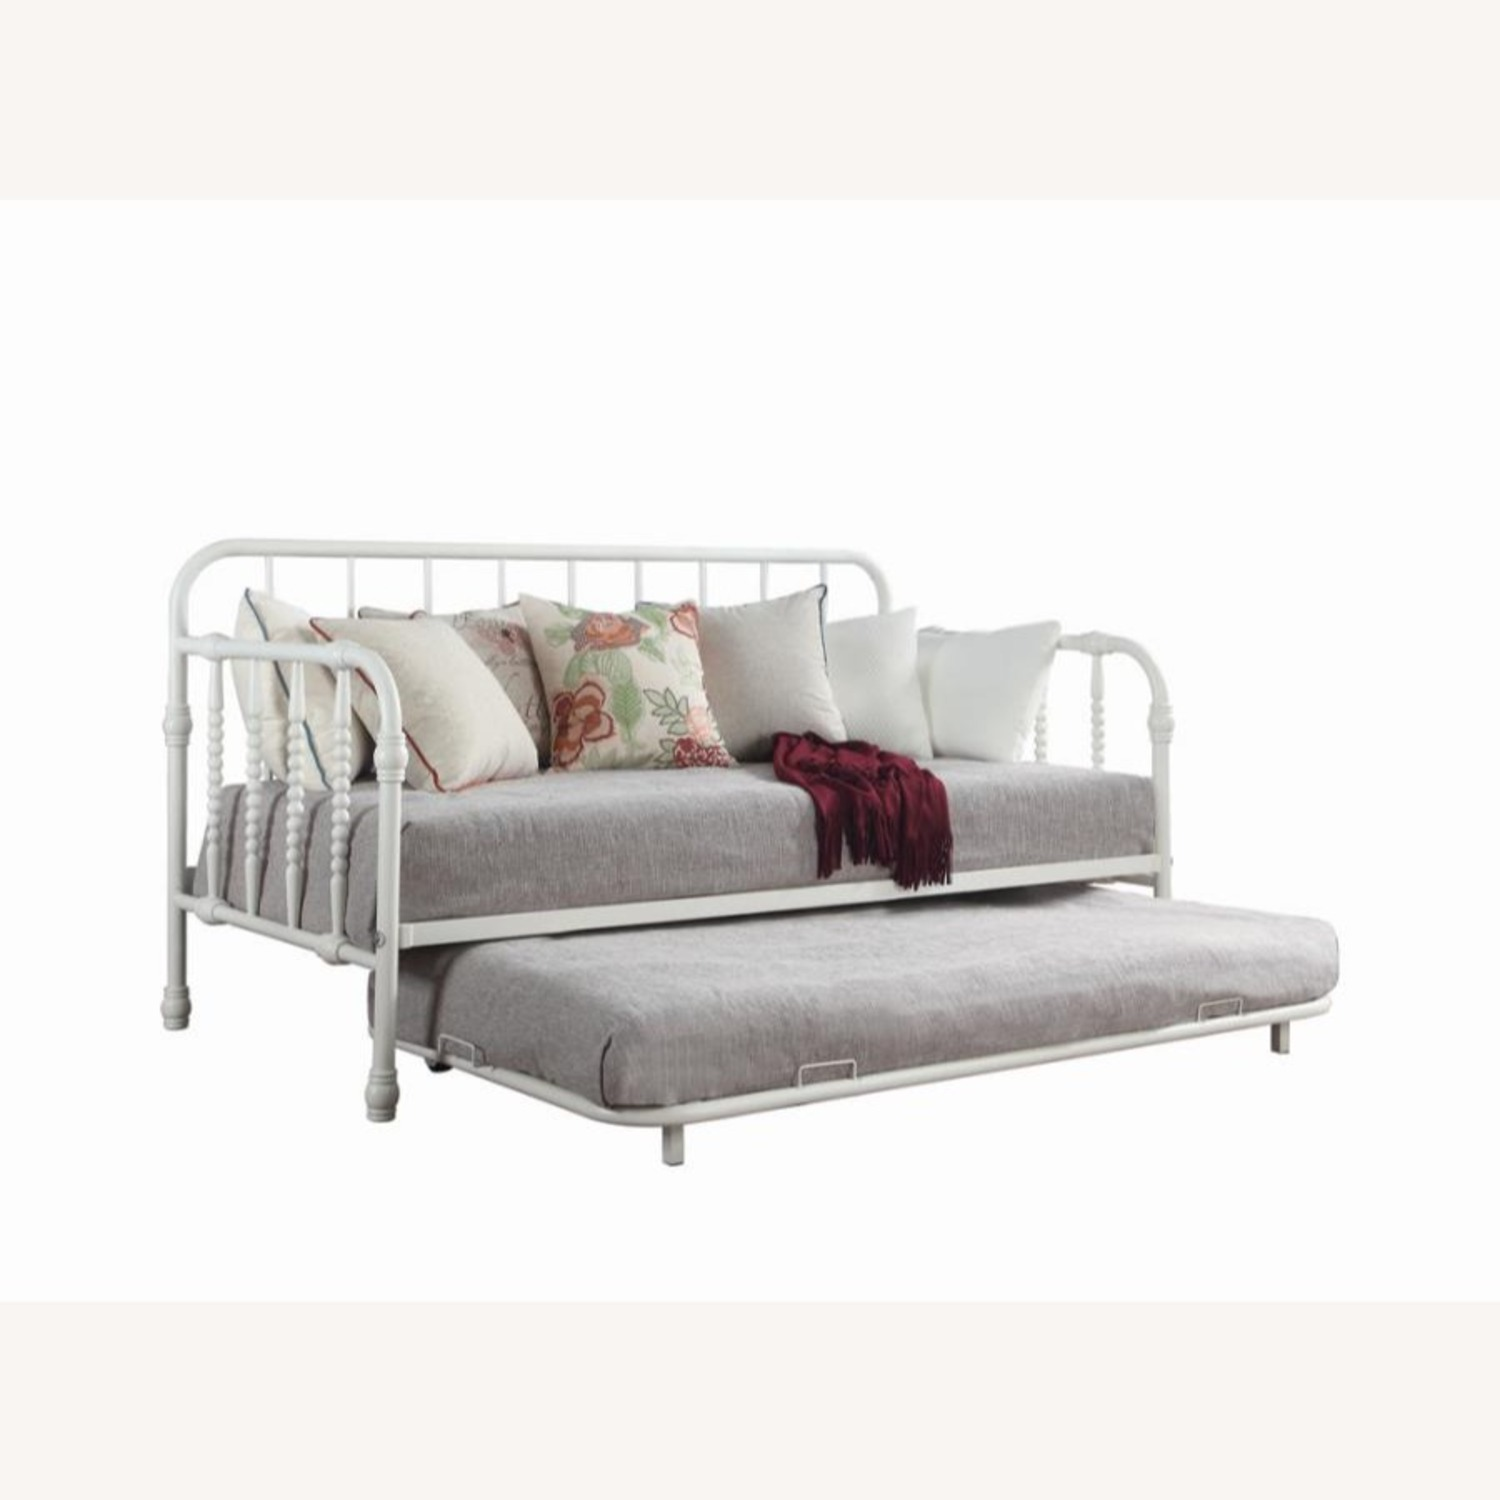 Twin Daybed W/ Trundle In White Steel Tubing - image-1